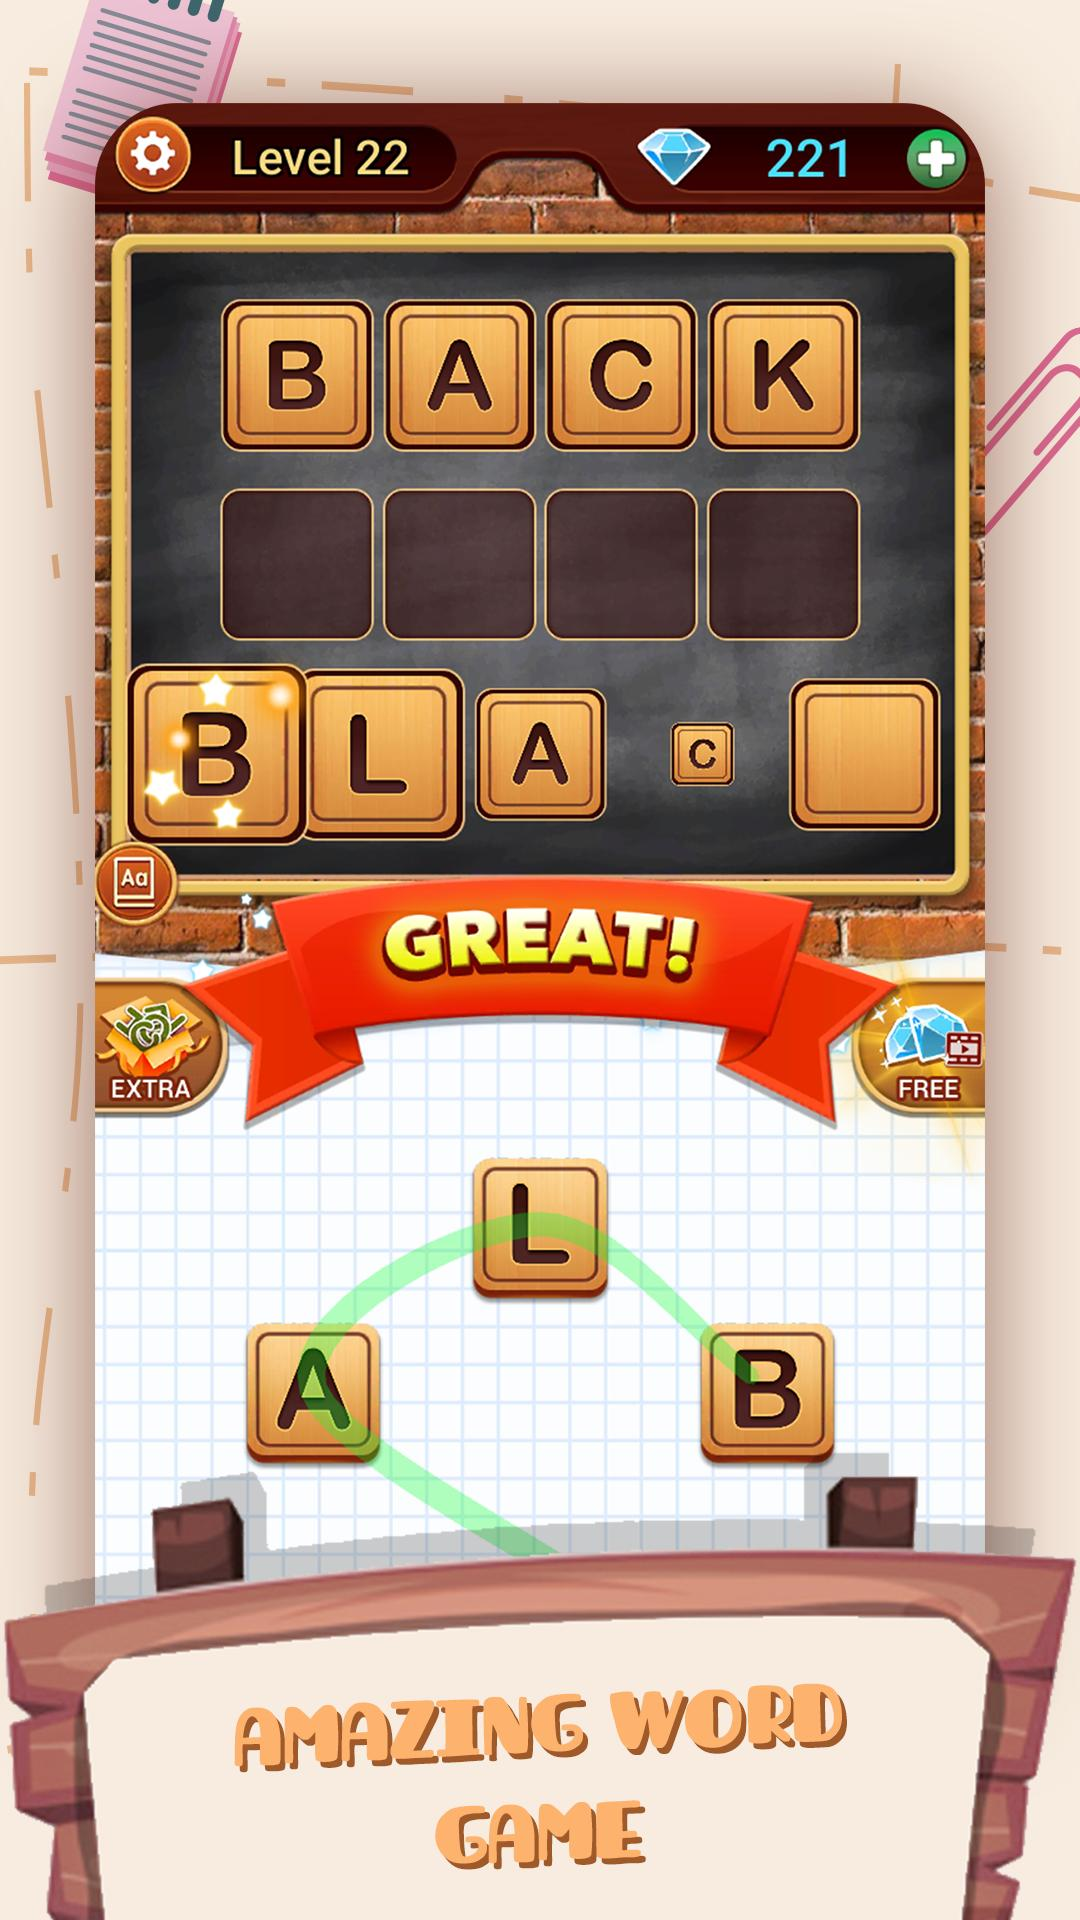 Astonishing Word Link 2 For Android Apk Download Download Free Architecture Designs Scobabritishbridgeorg